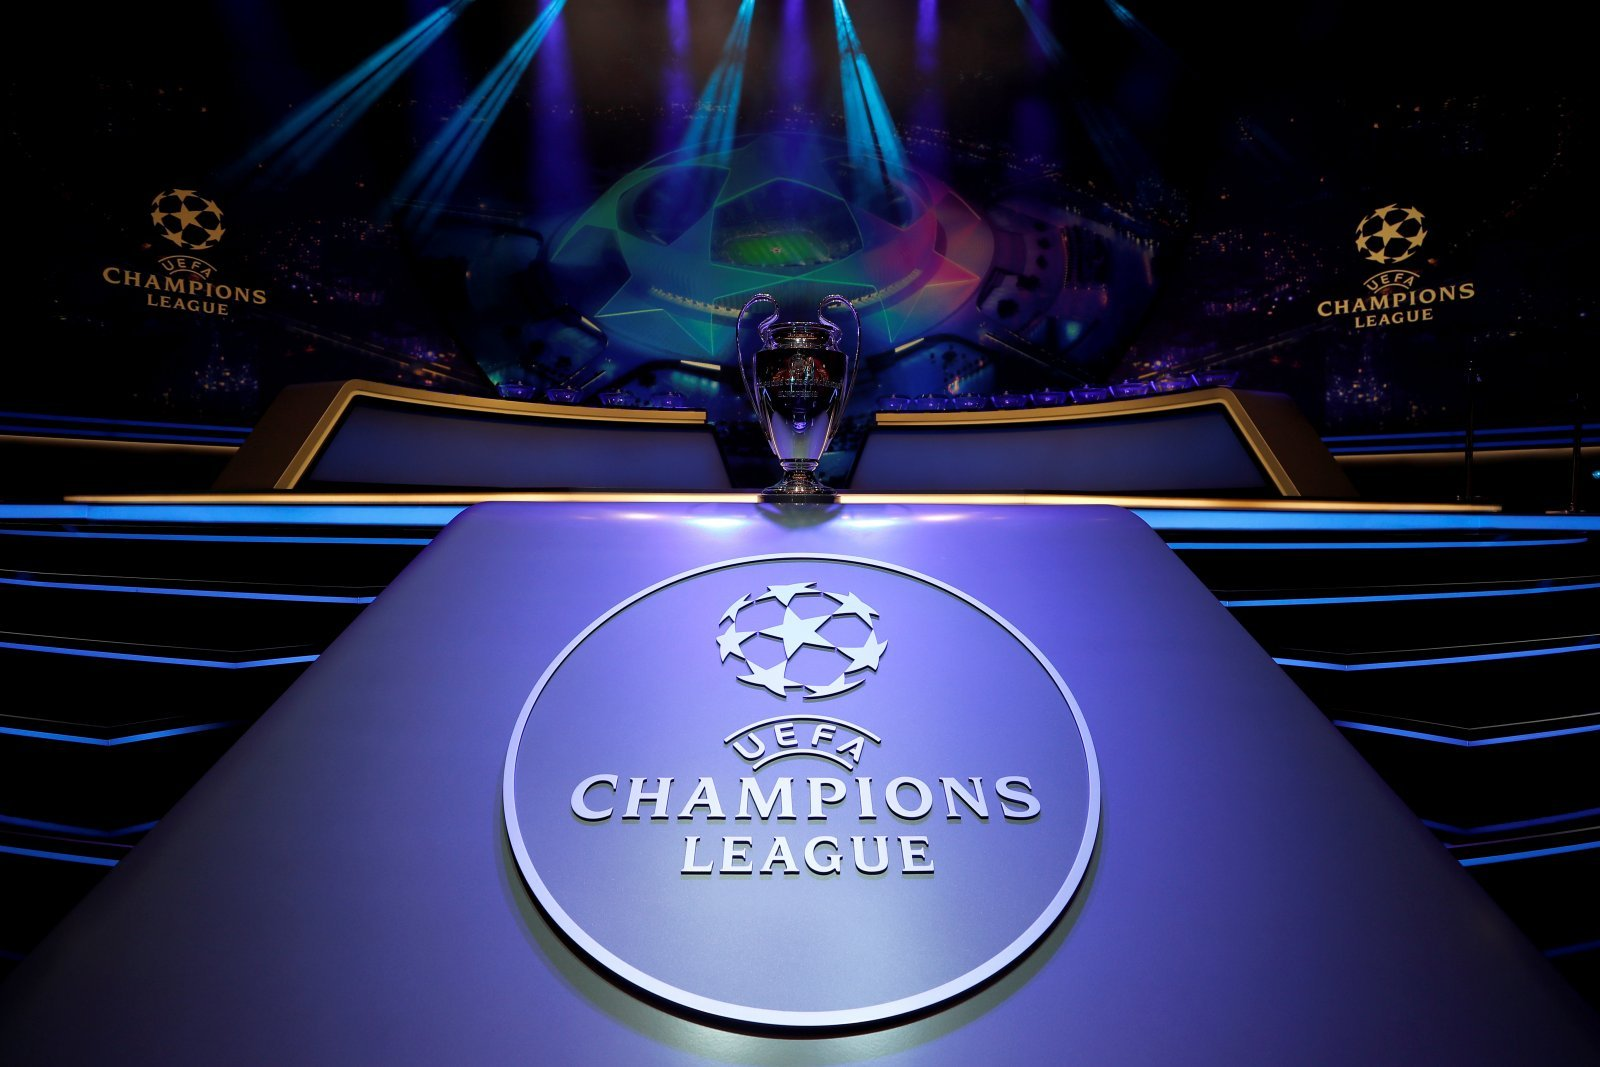 UEFA announce changes to Champions League qualifiers with away goals rule  binned | videocelts.com